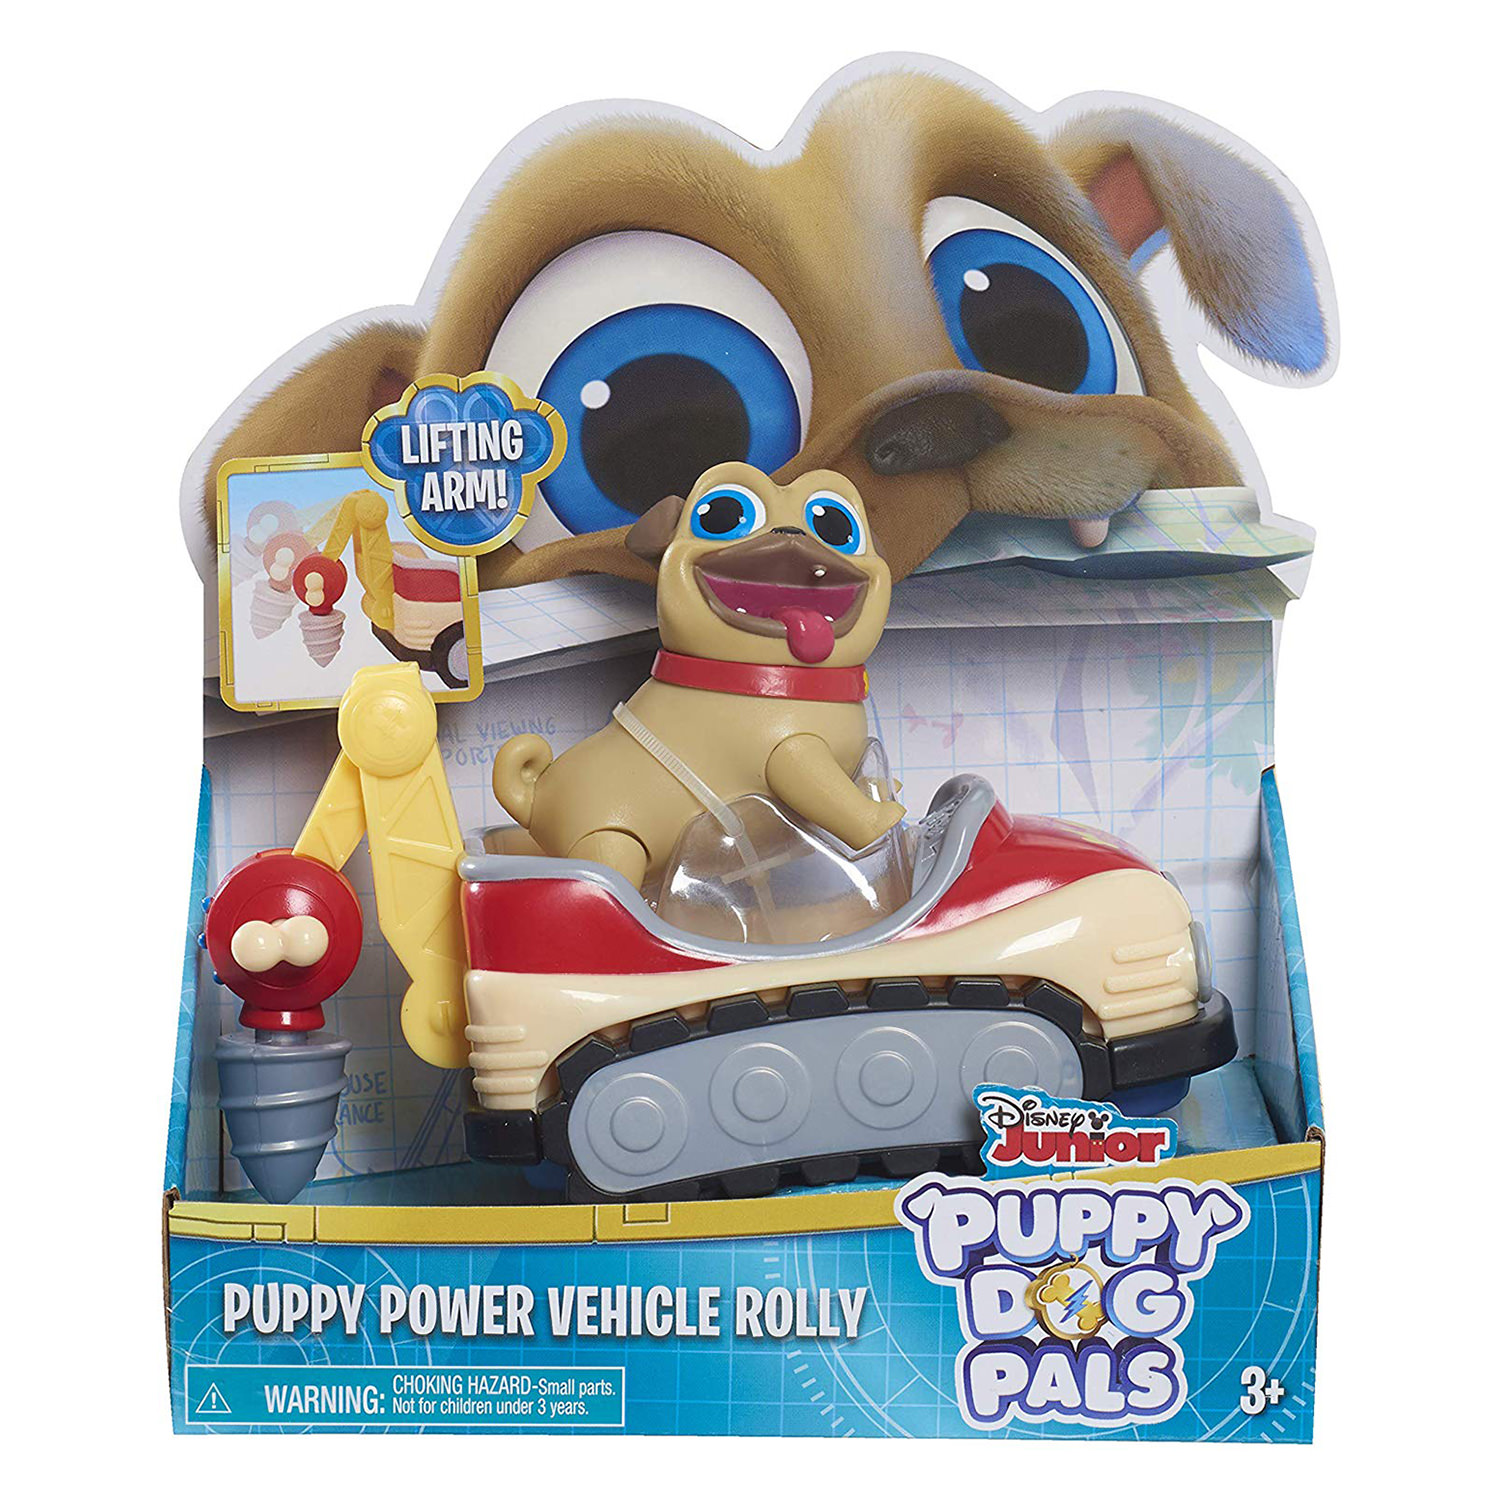 Disney Puppy Dog Pals Puppy Power Vehicle Rolly